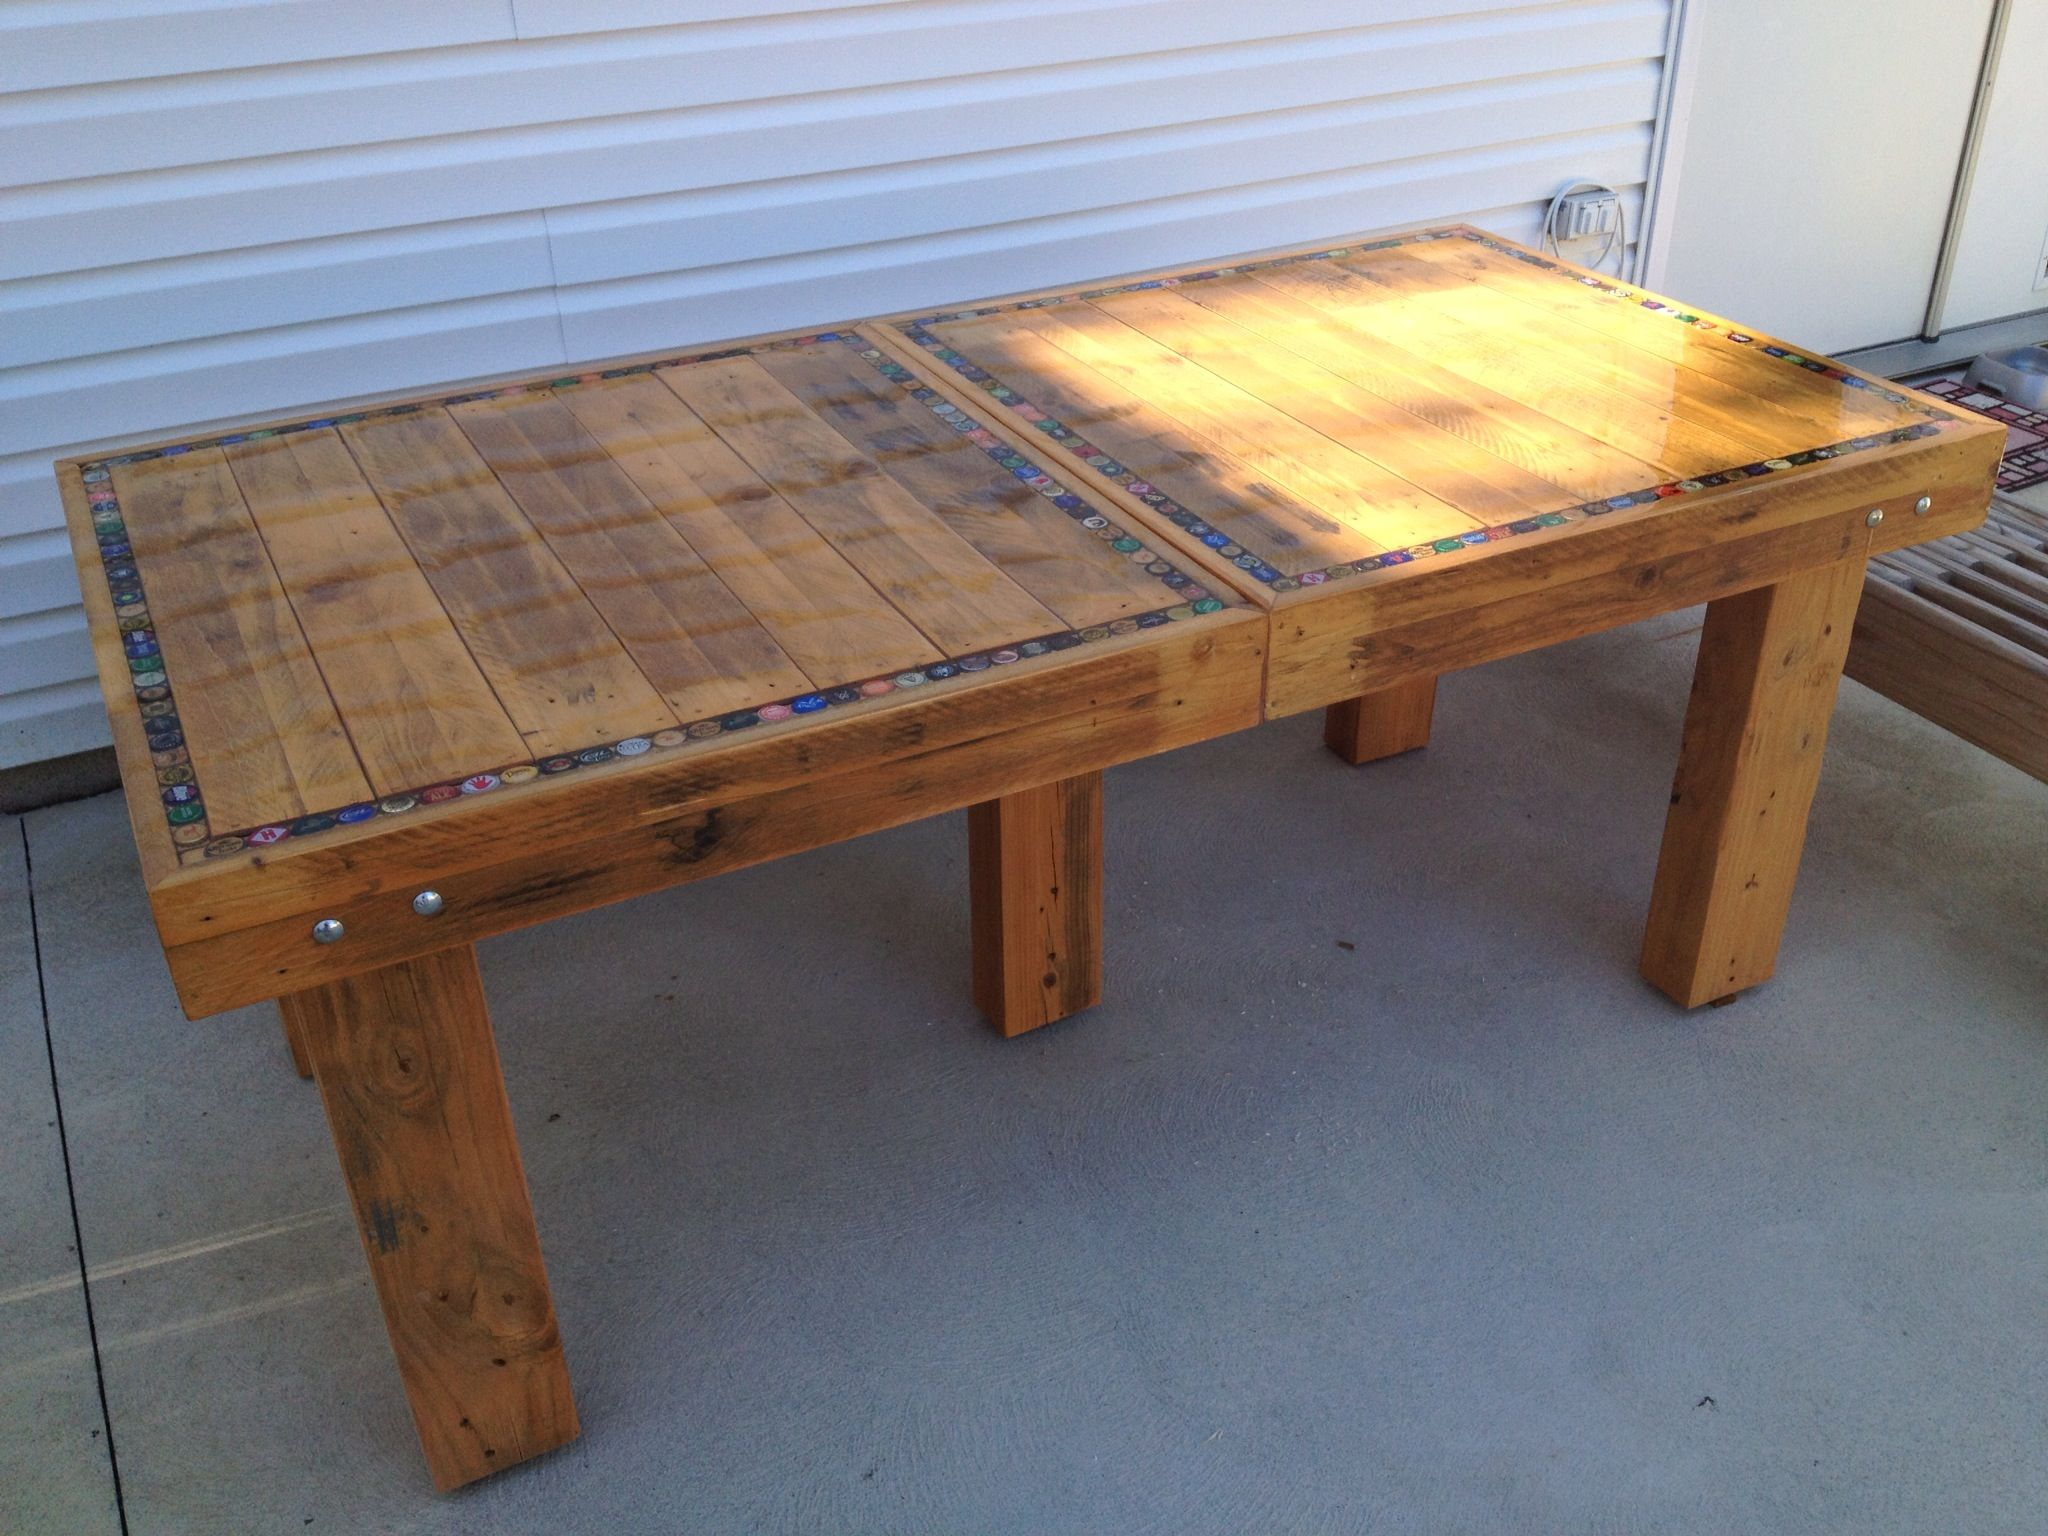 Swell Bottle Cap Table Made With Recycled Wood Craft And Diy Alphanode Cool Chair Designs And Ideas Alphanodeonline